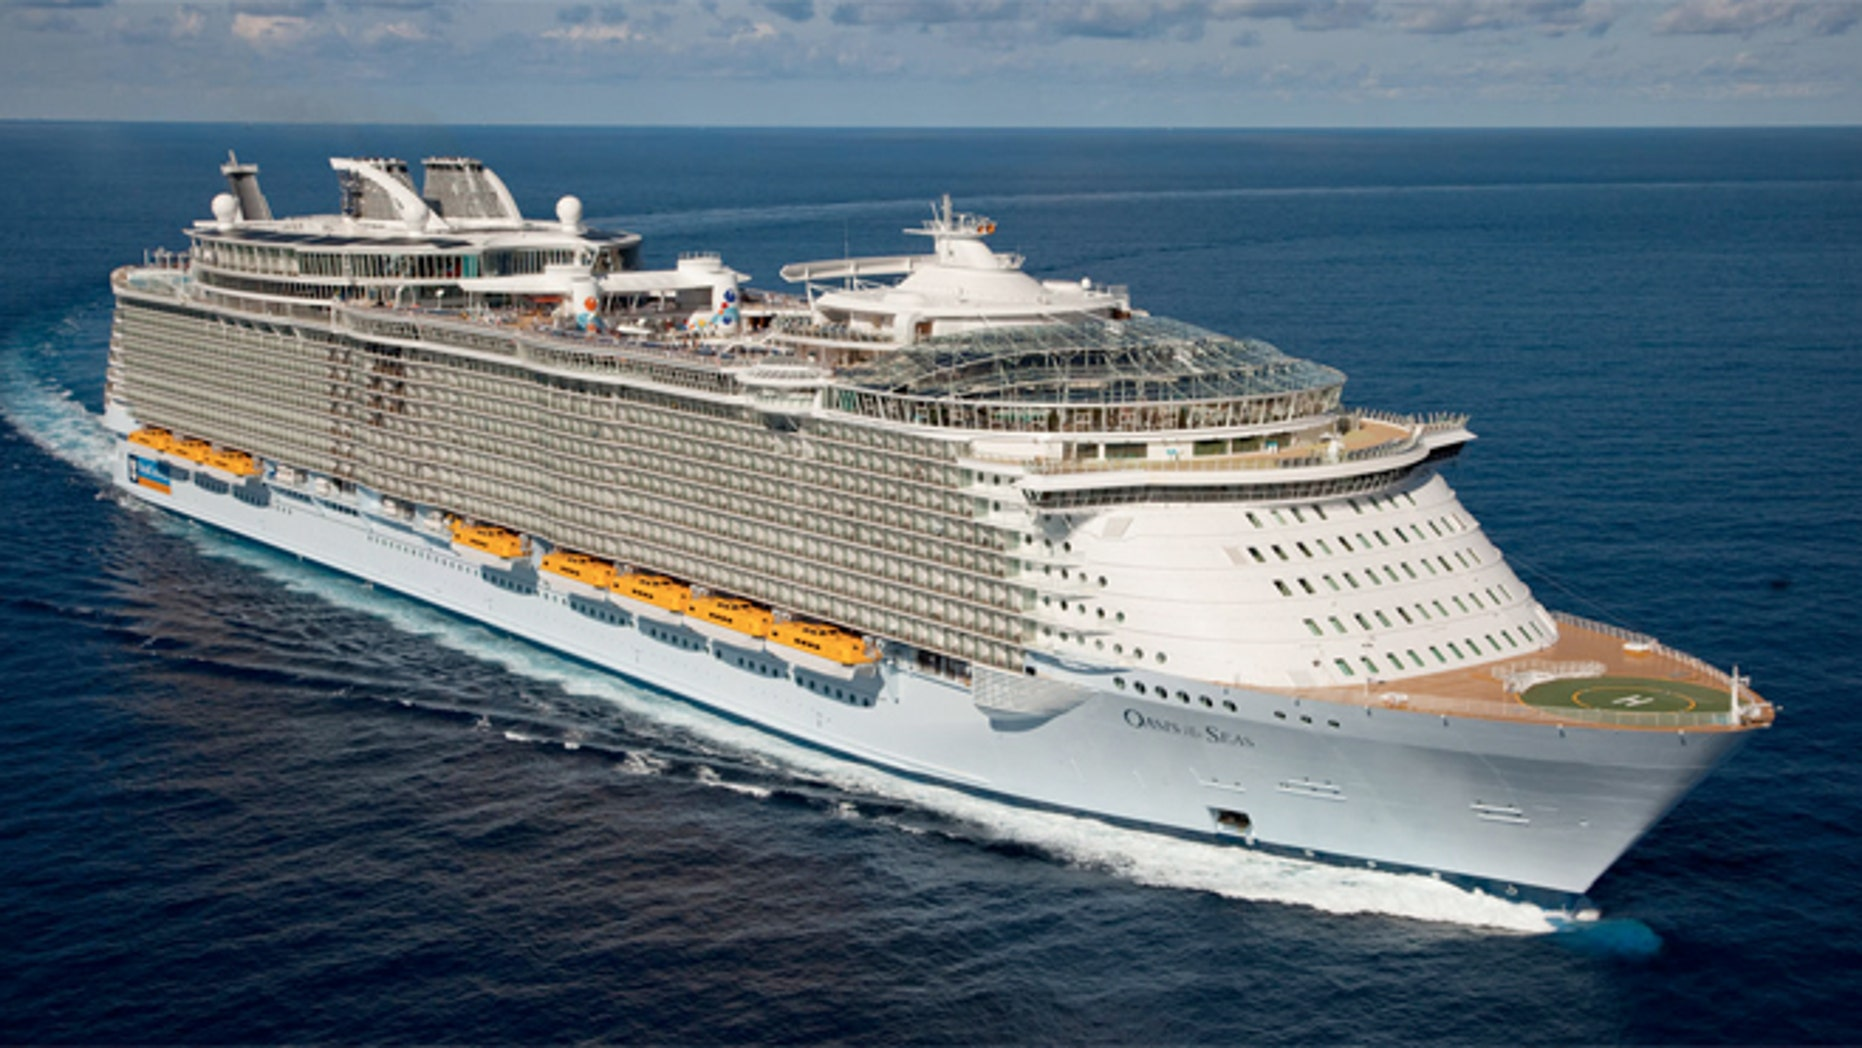 Norovirus outbreak on Royal Caribbean cruise sickens 167 passengers